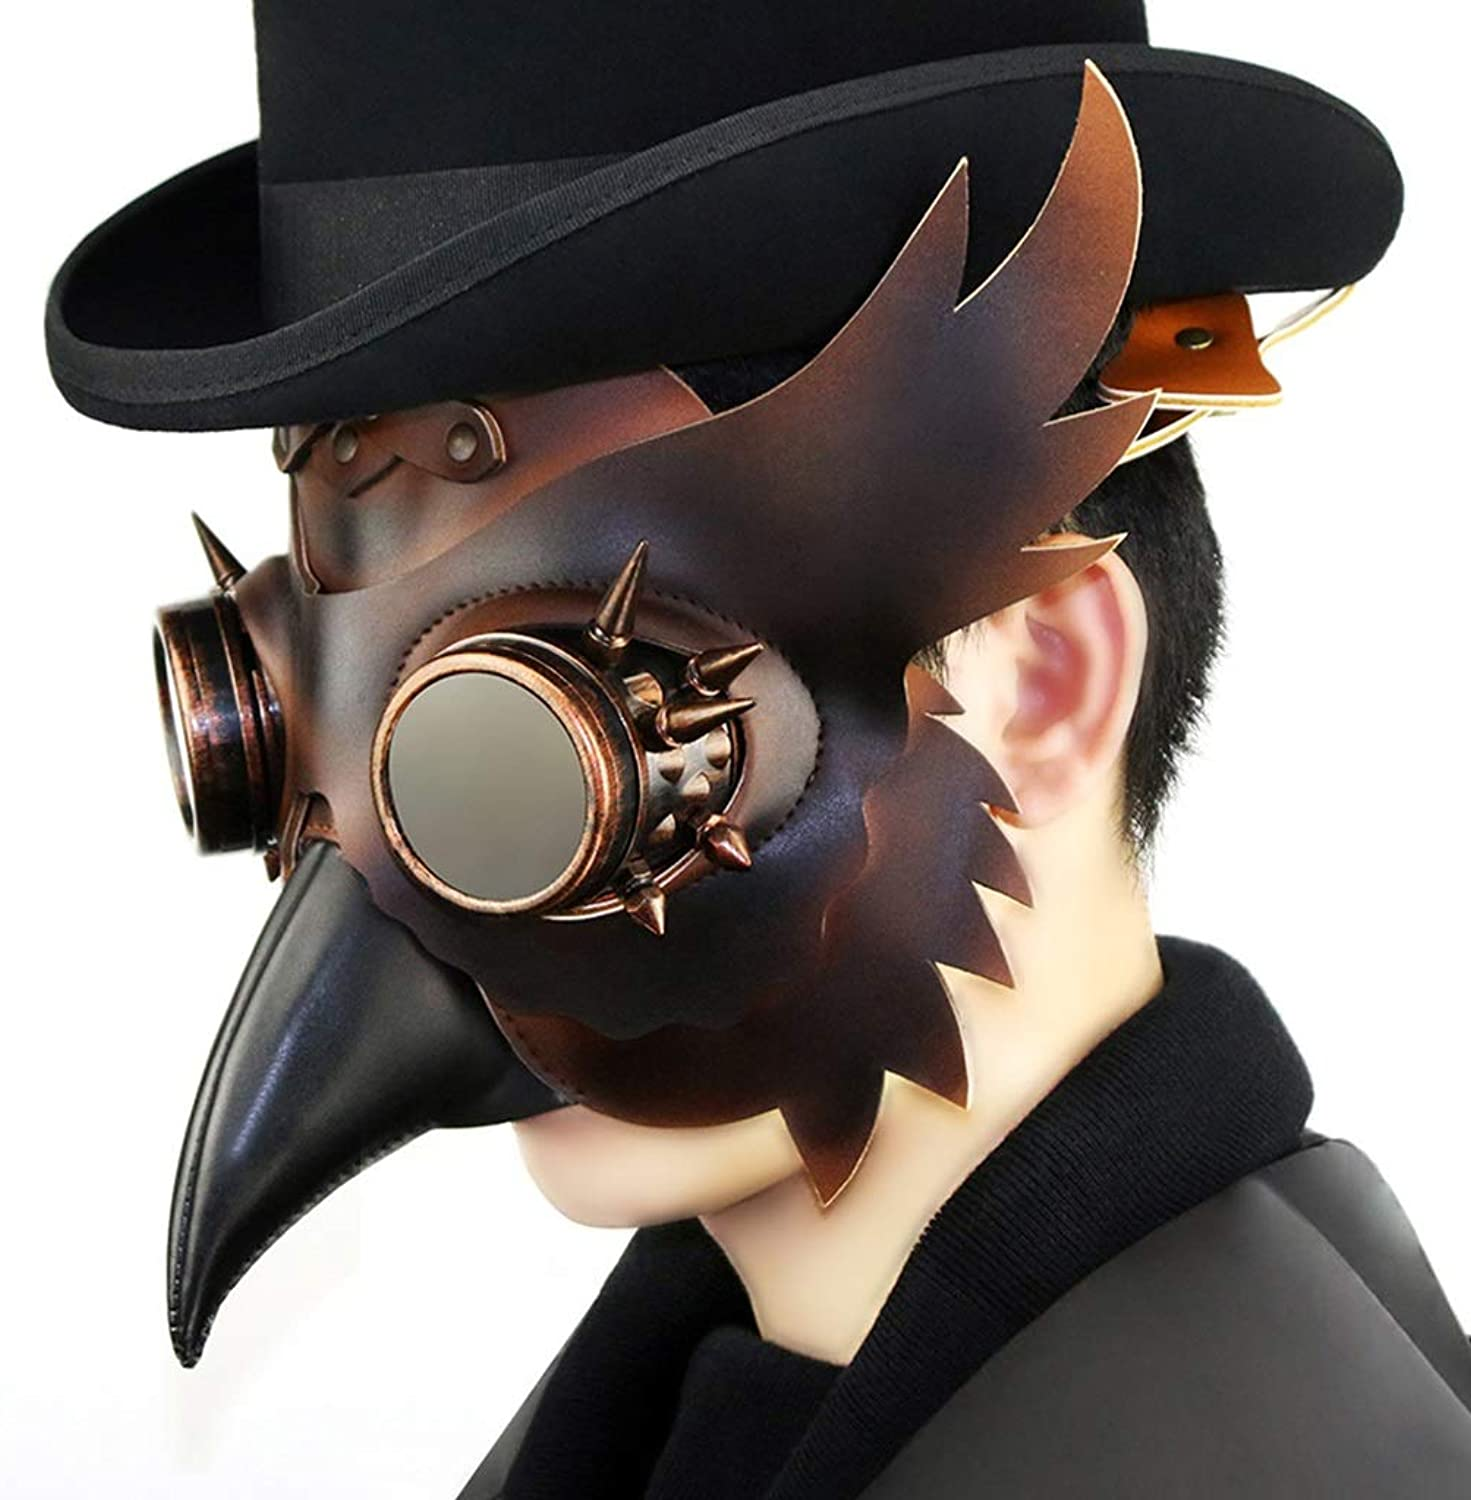 Taotao Tao Steampunk Plague Beak Mask Halloween Bar Apoyos Apoyos Apoyos Regalo  descuento de ventas